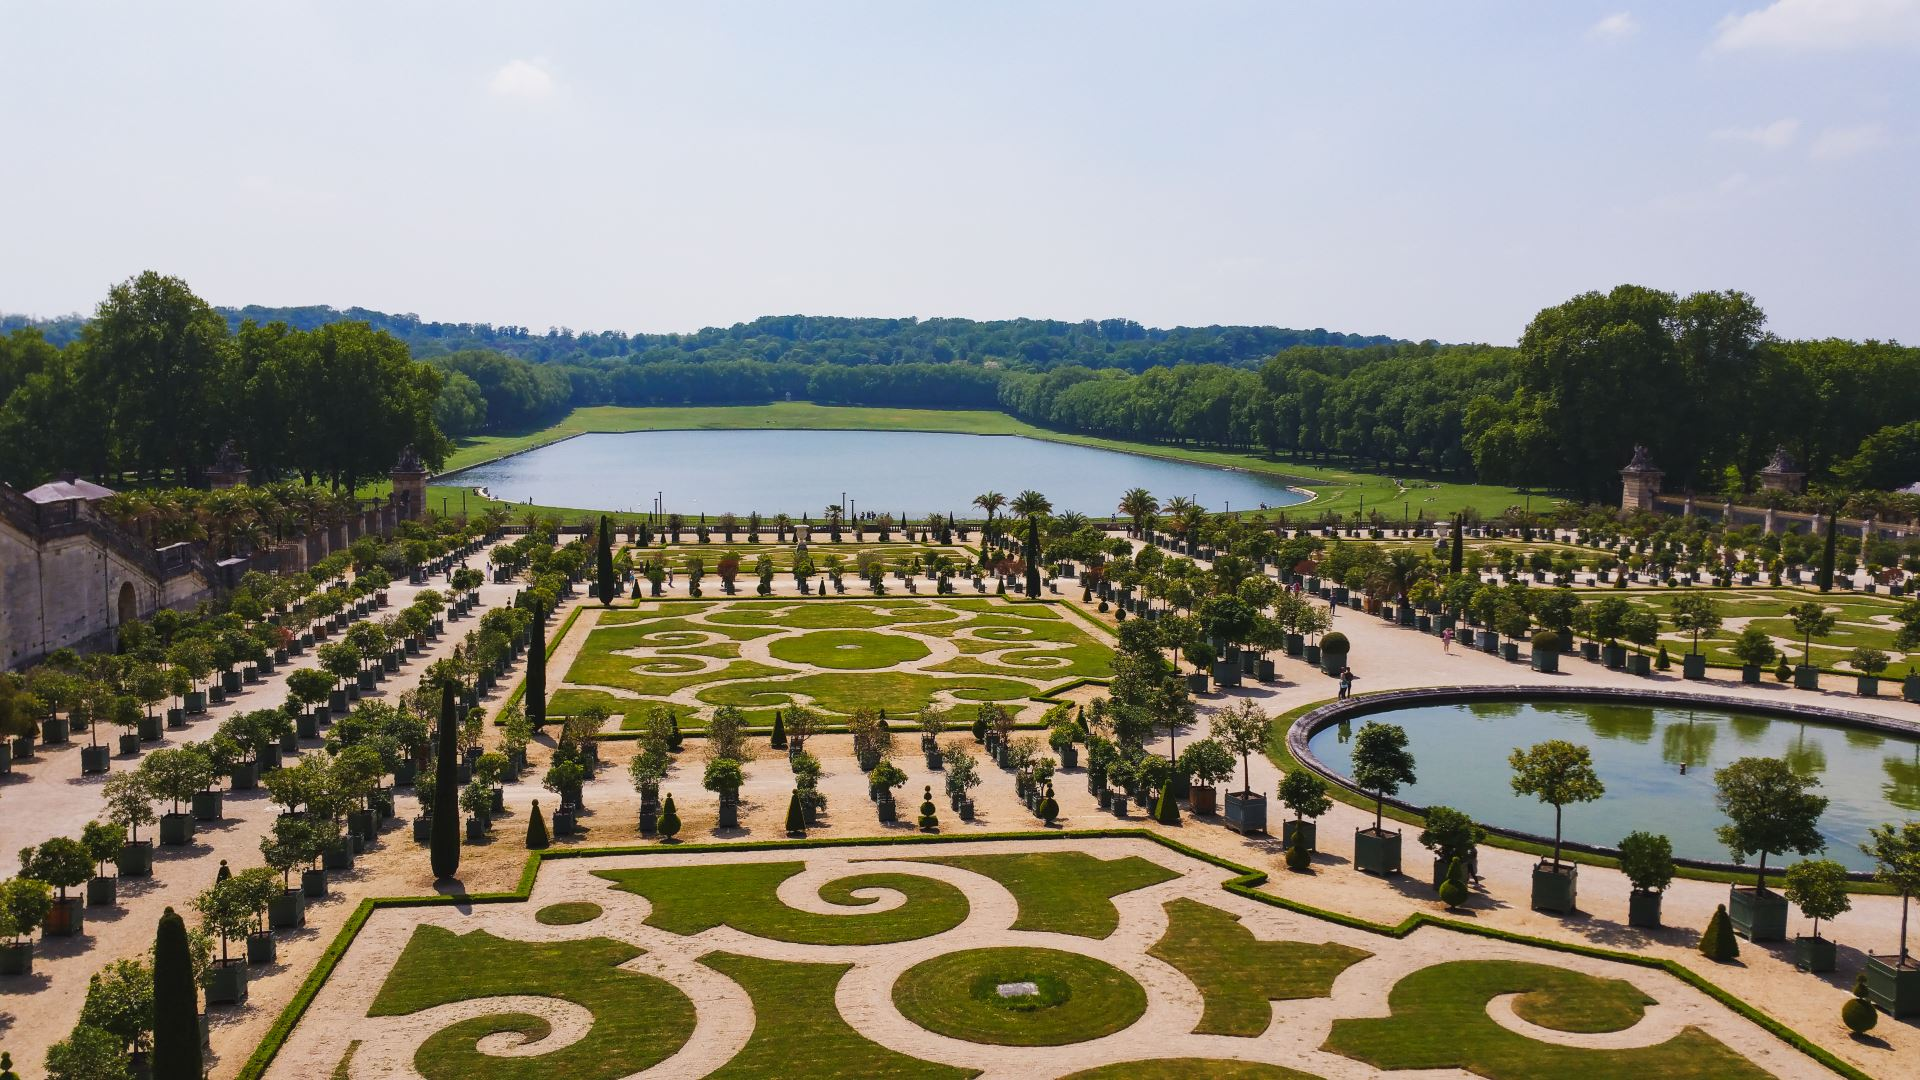 Versailles-Garten - Heiratsantrag in Paris